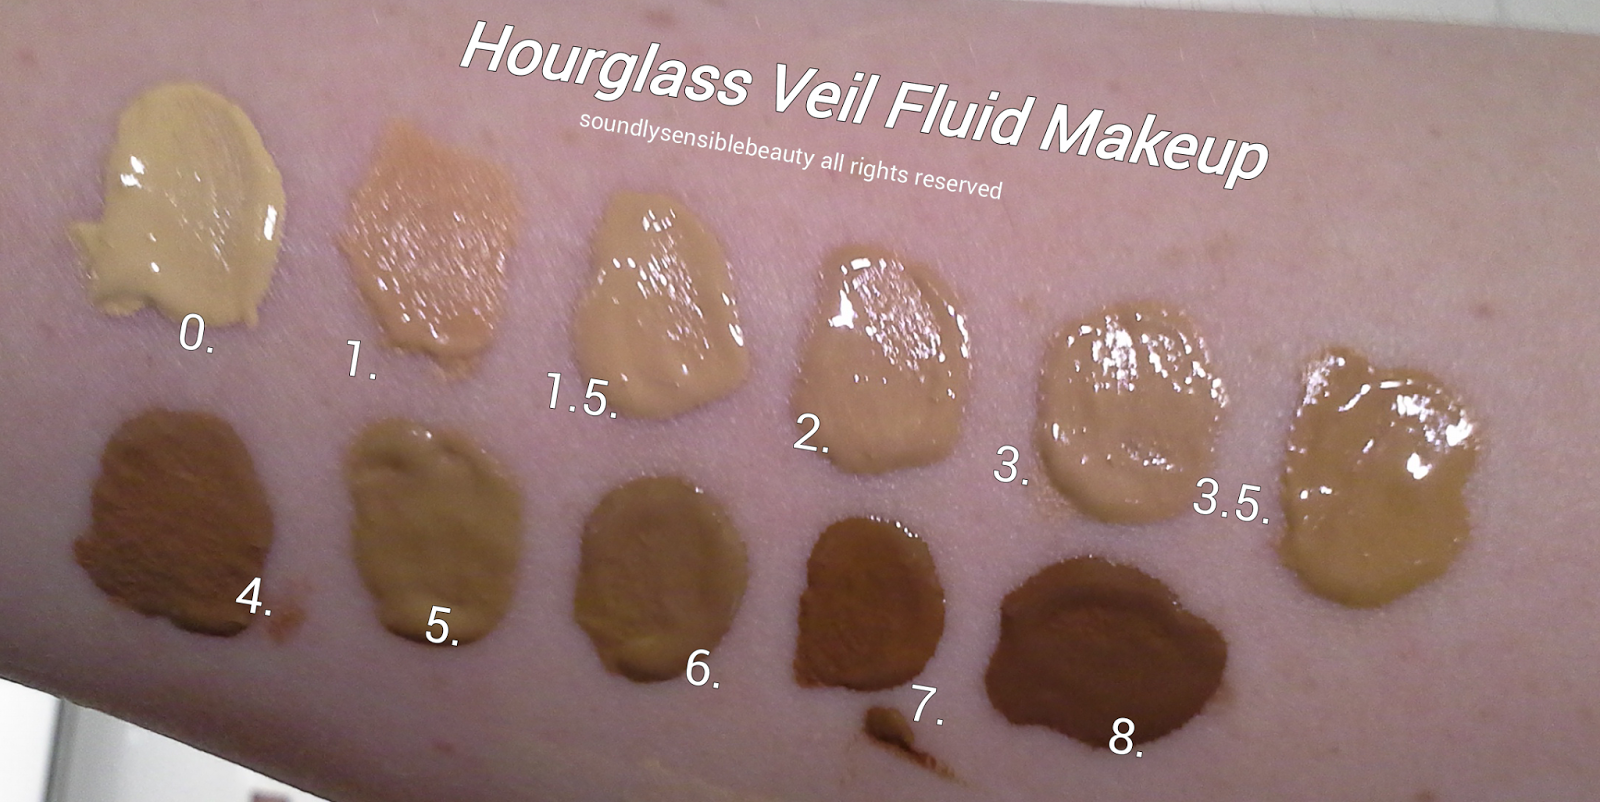 Hourglass Veil Fluid Makeup- Oil Free Foundation SPF 15 Review & Swatches of Shades #0 Porcelain, #1 Ivory, #1.5 Nude, #2 Light Beige, #3 Sand, #3.5 Honey,  #4 Beige, #5 Warm Beige, #6 Sable, #7 Chestnut, #8 Walnut,